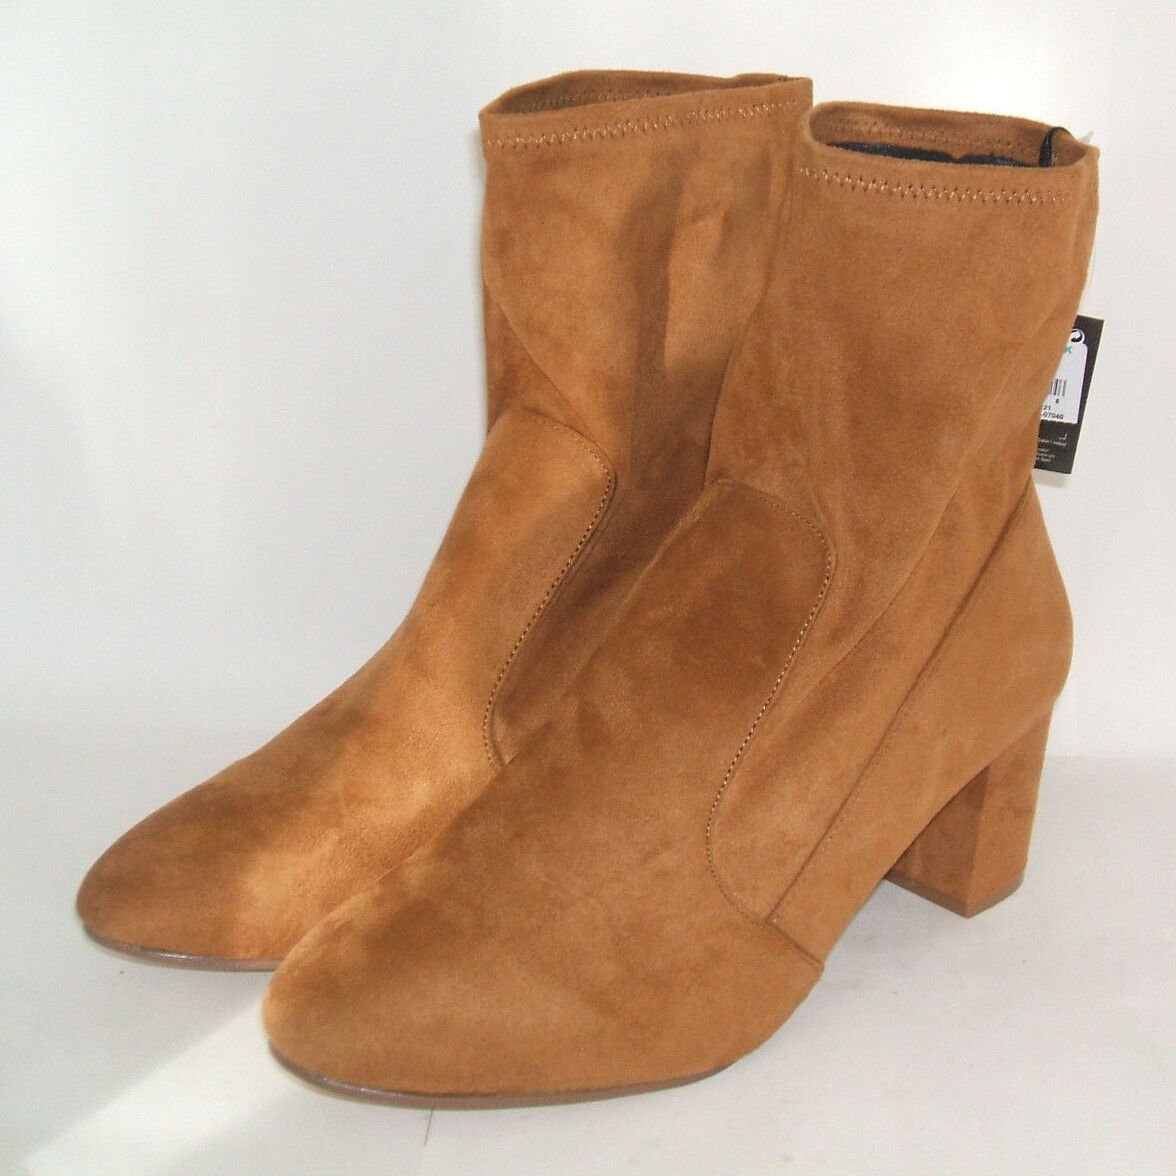 WOMENS SIZE 8 42 TAN FAUX SUEDE MID HIGH HEEL ANKLE BOOTS BNWOB